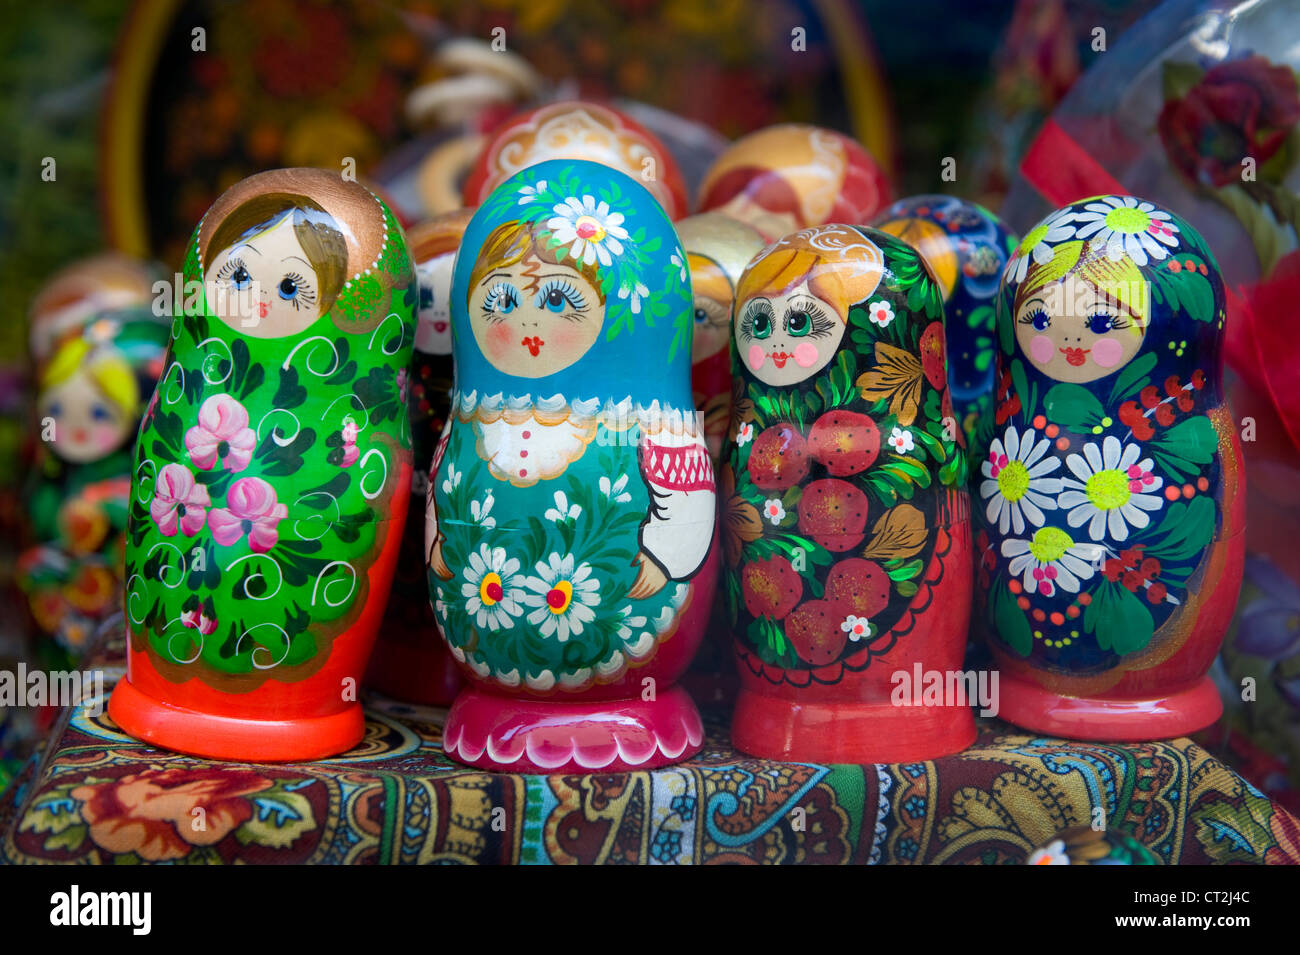 four babushka or matrioshka russian dolls - Stock Image